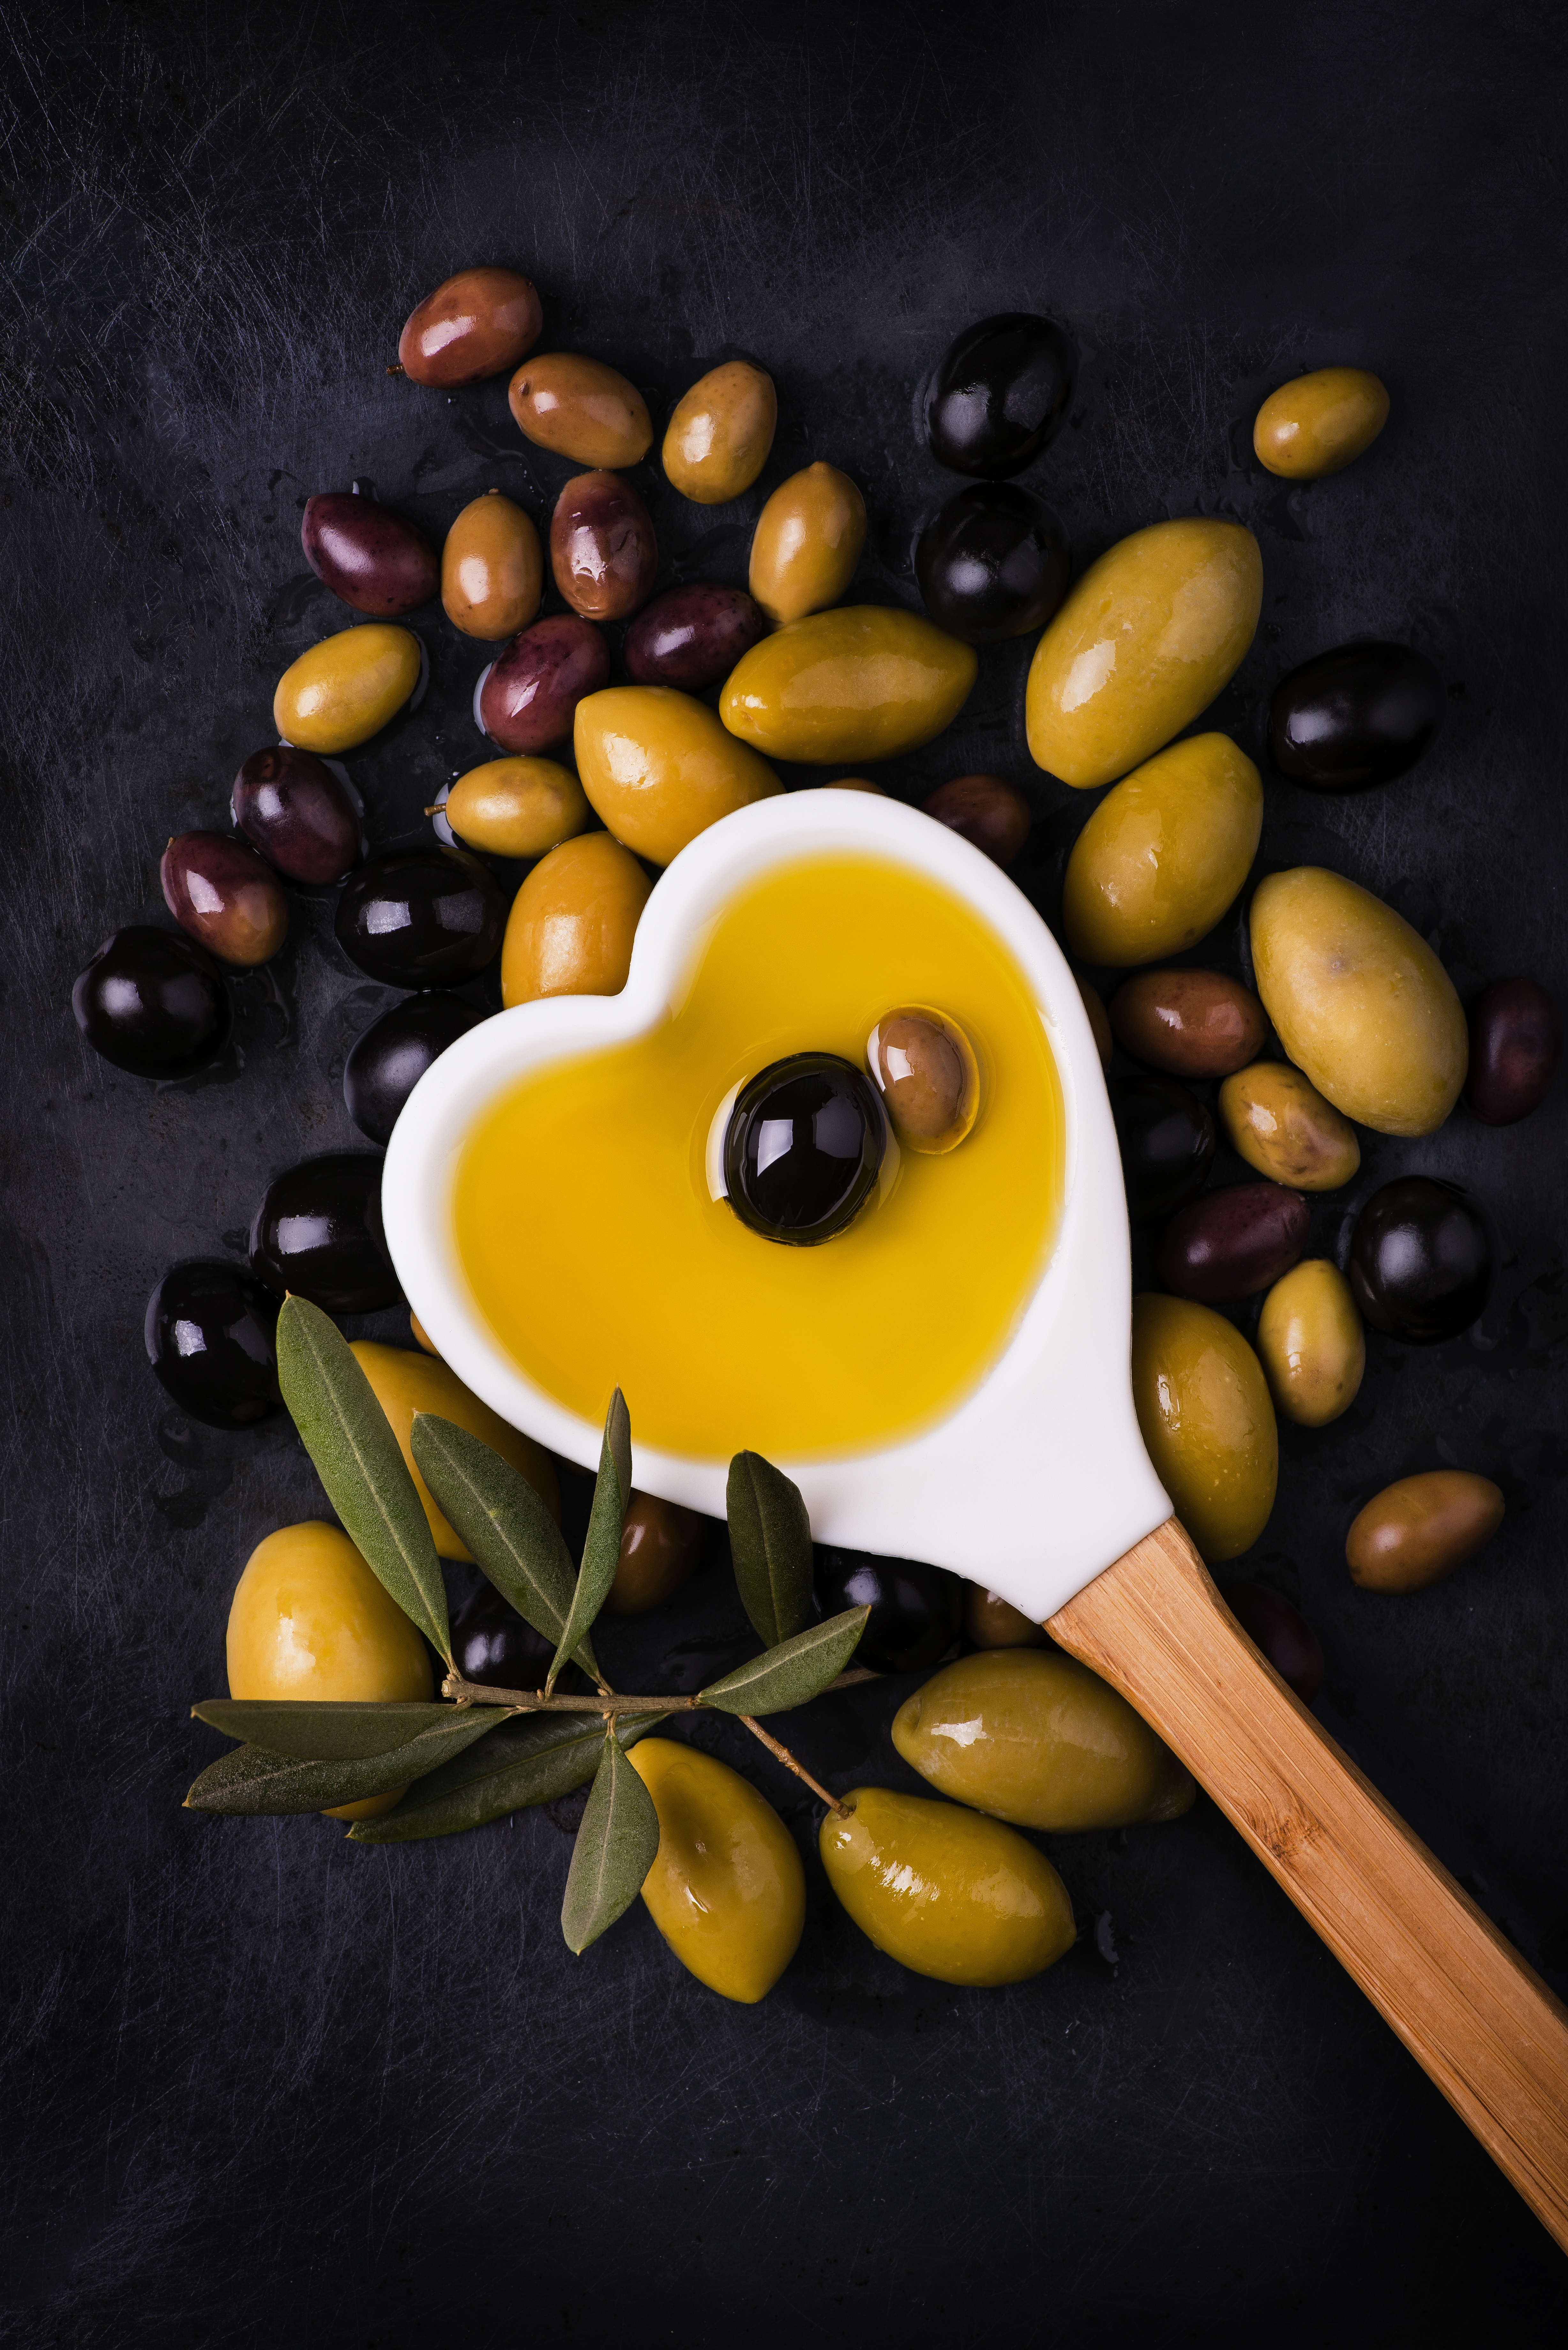 iStock-1005290734 olives and olive oil.jpg